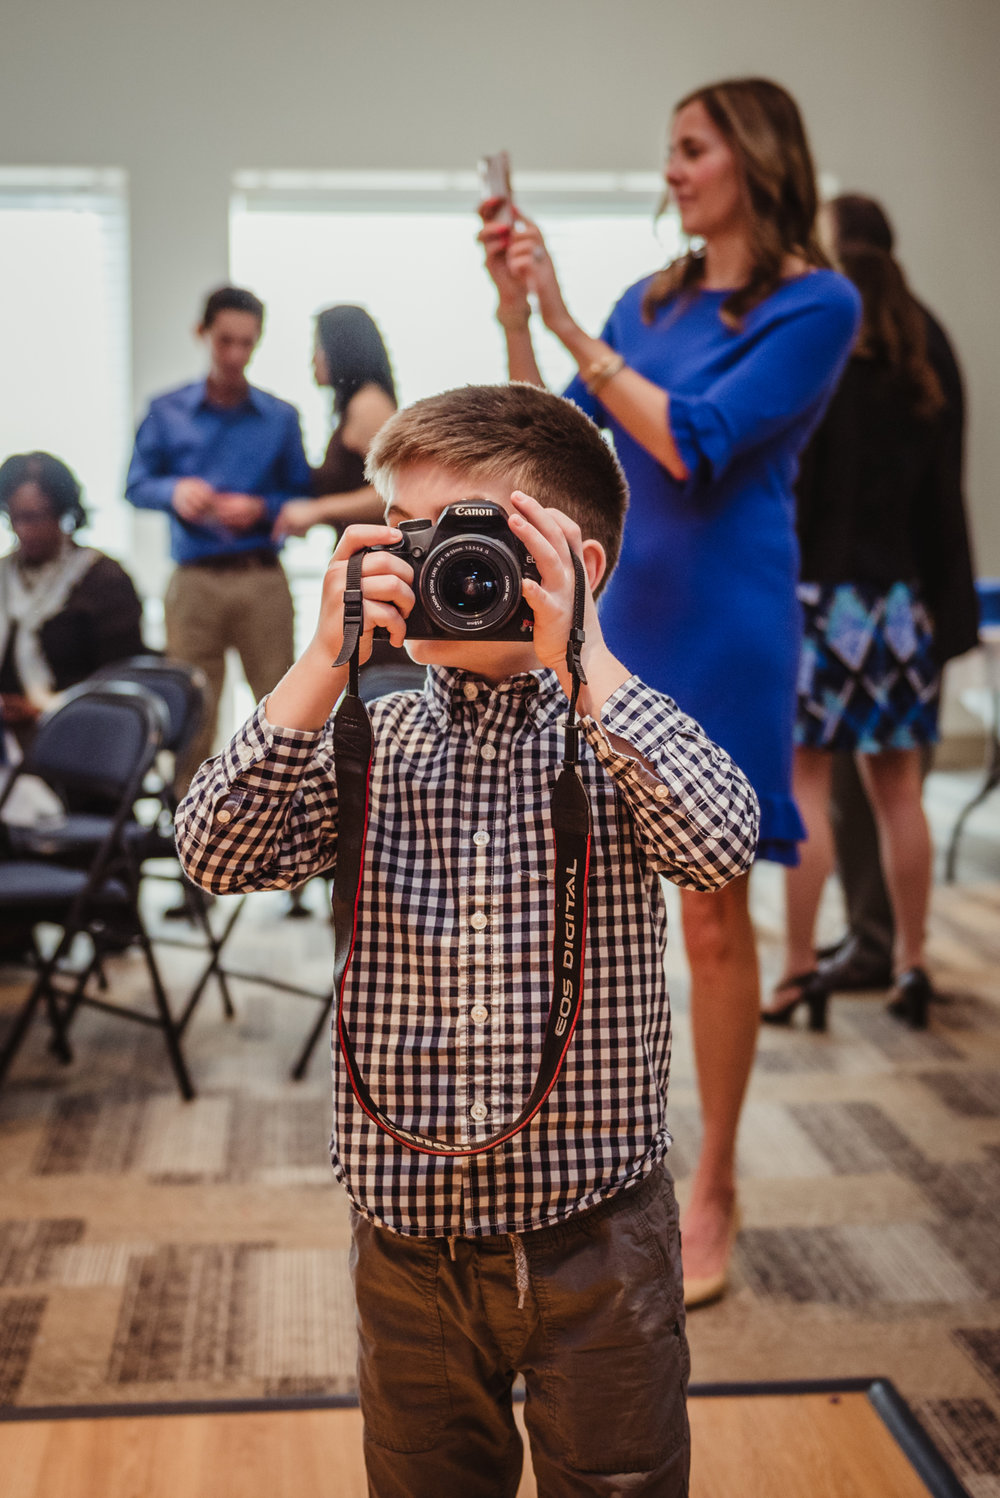 A boy takes a picture of me while I take a picture of him during the mitzvah celebration at Temple Beth Or.